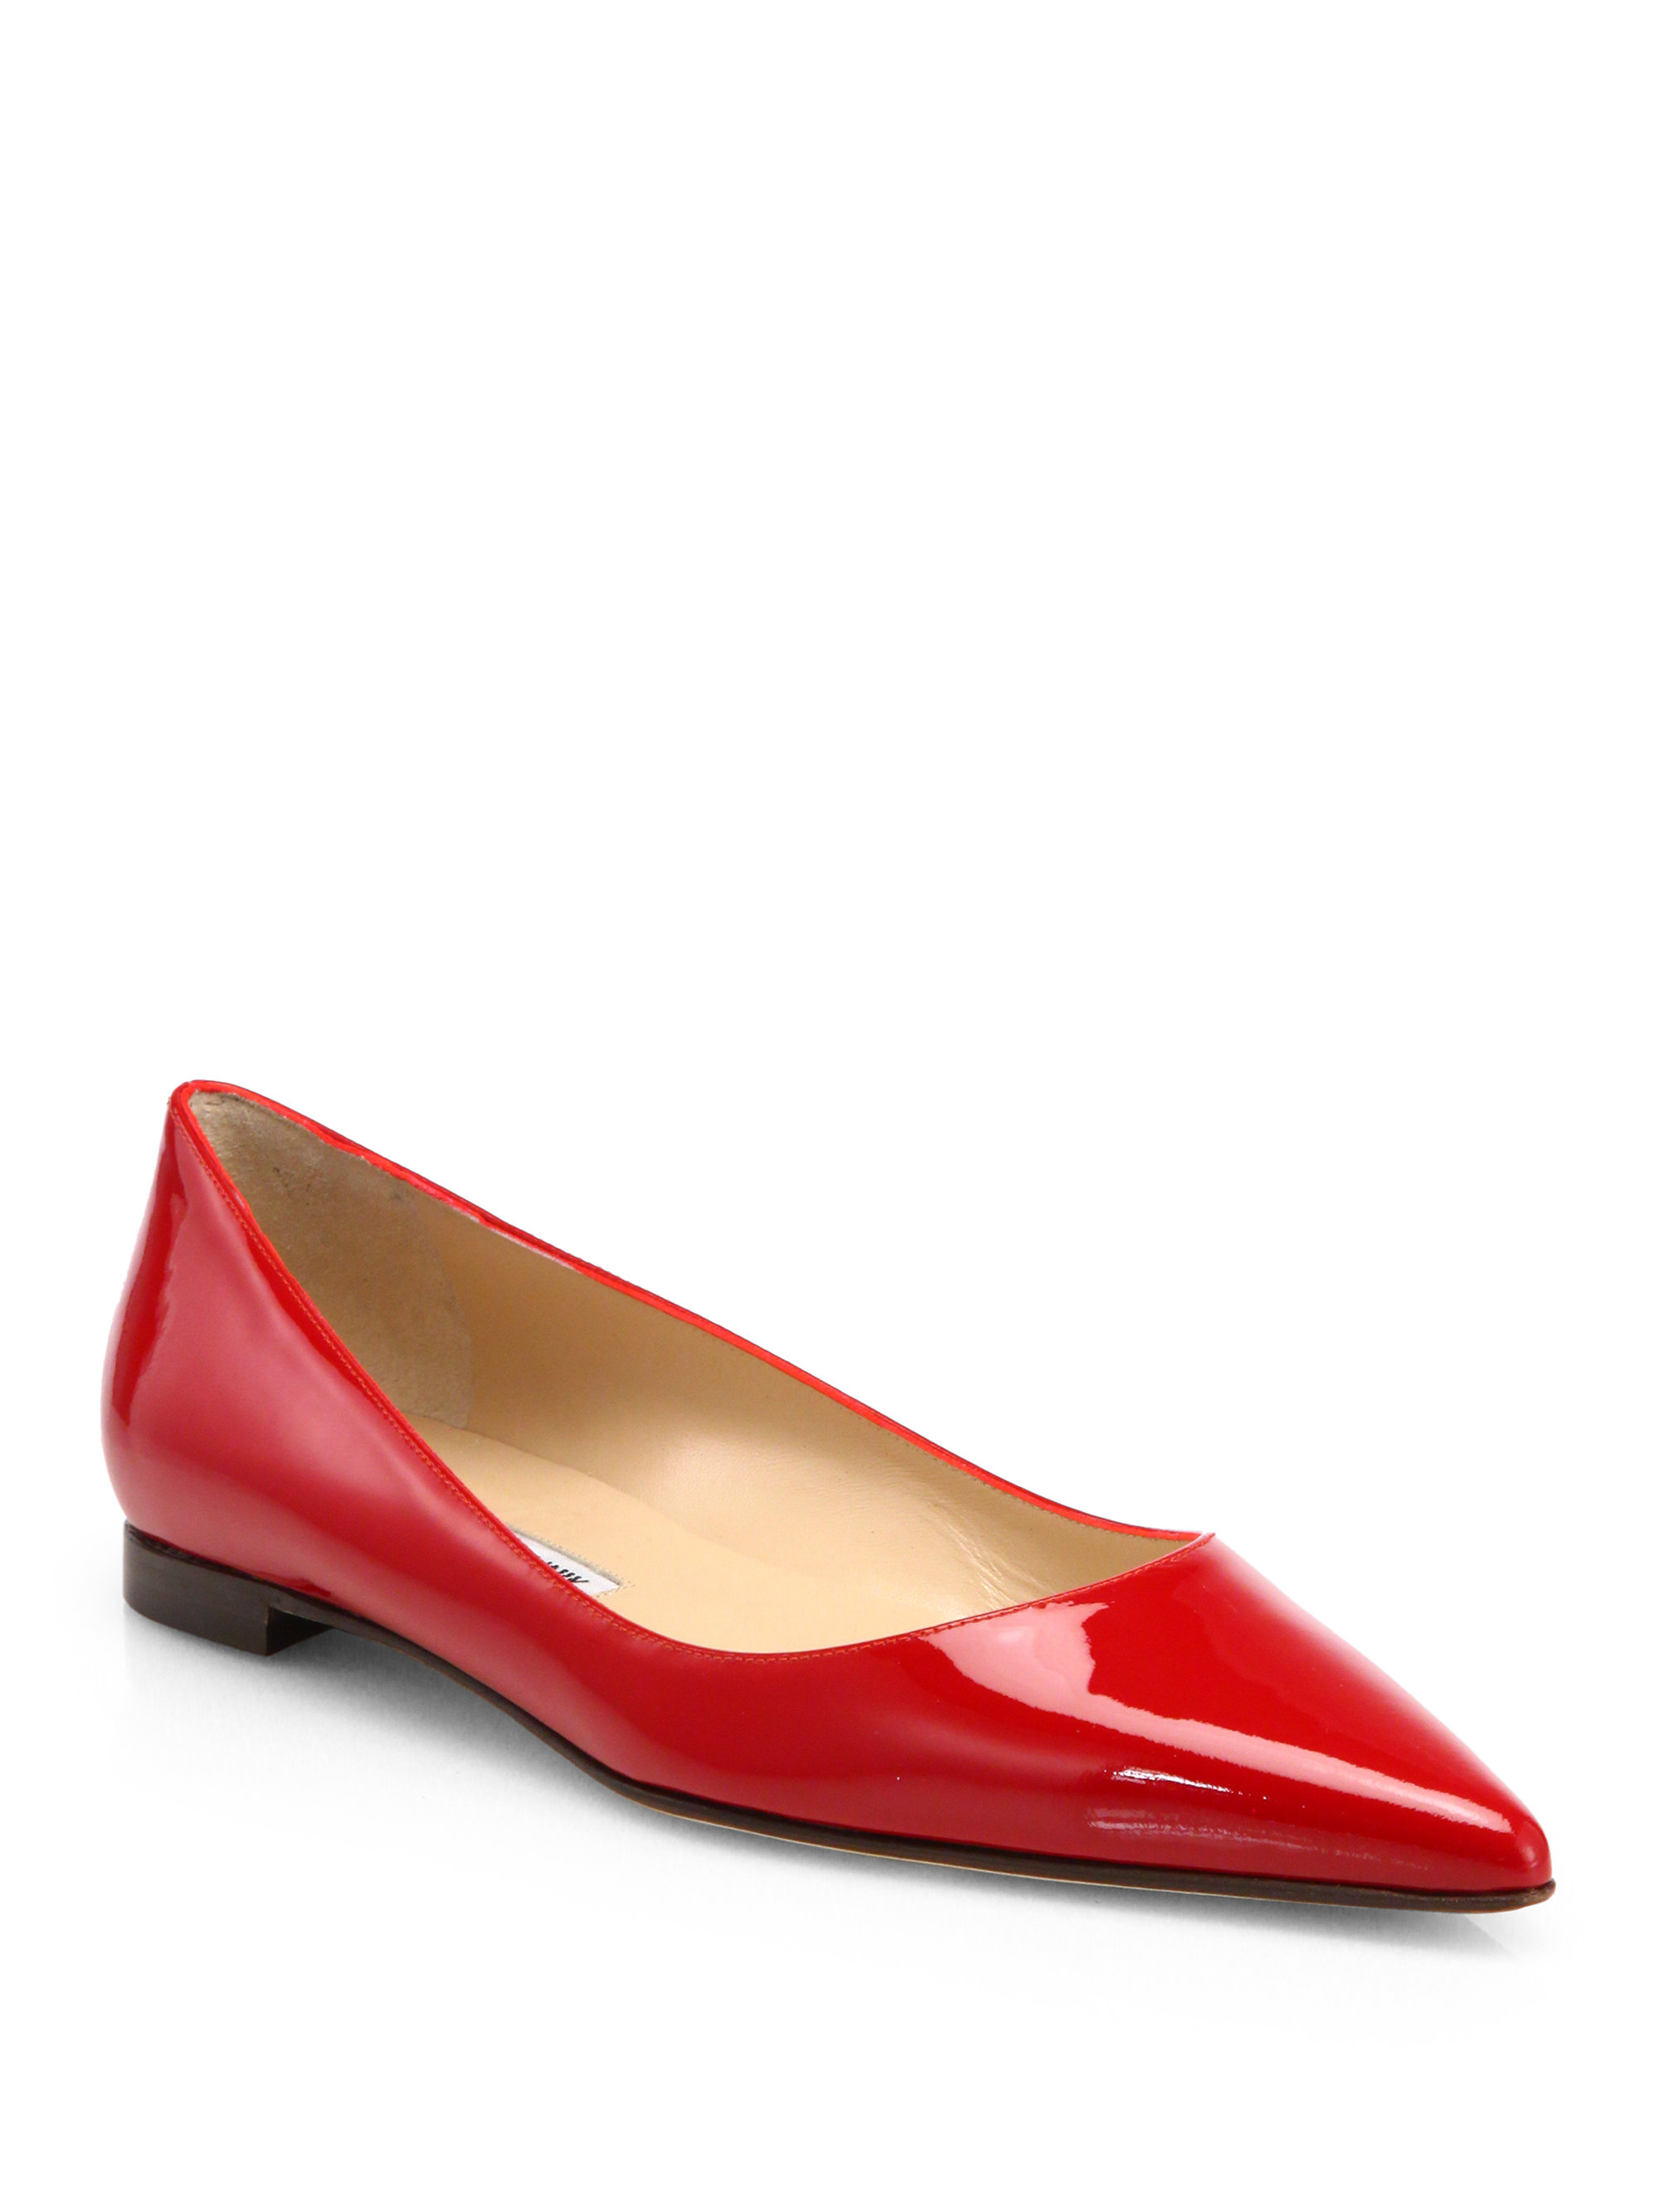 Manolo Blahnik Bb Patent Leather Ballet Flats In Red Lyst